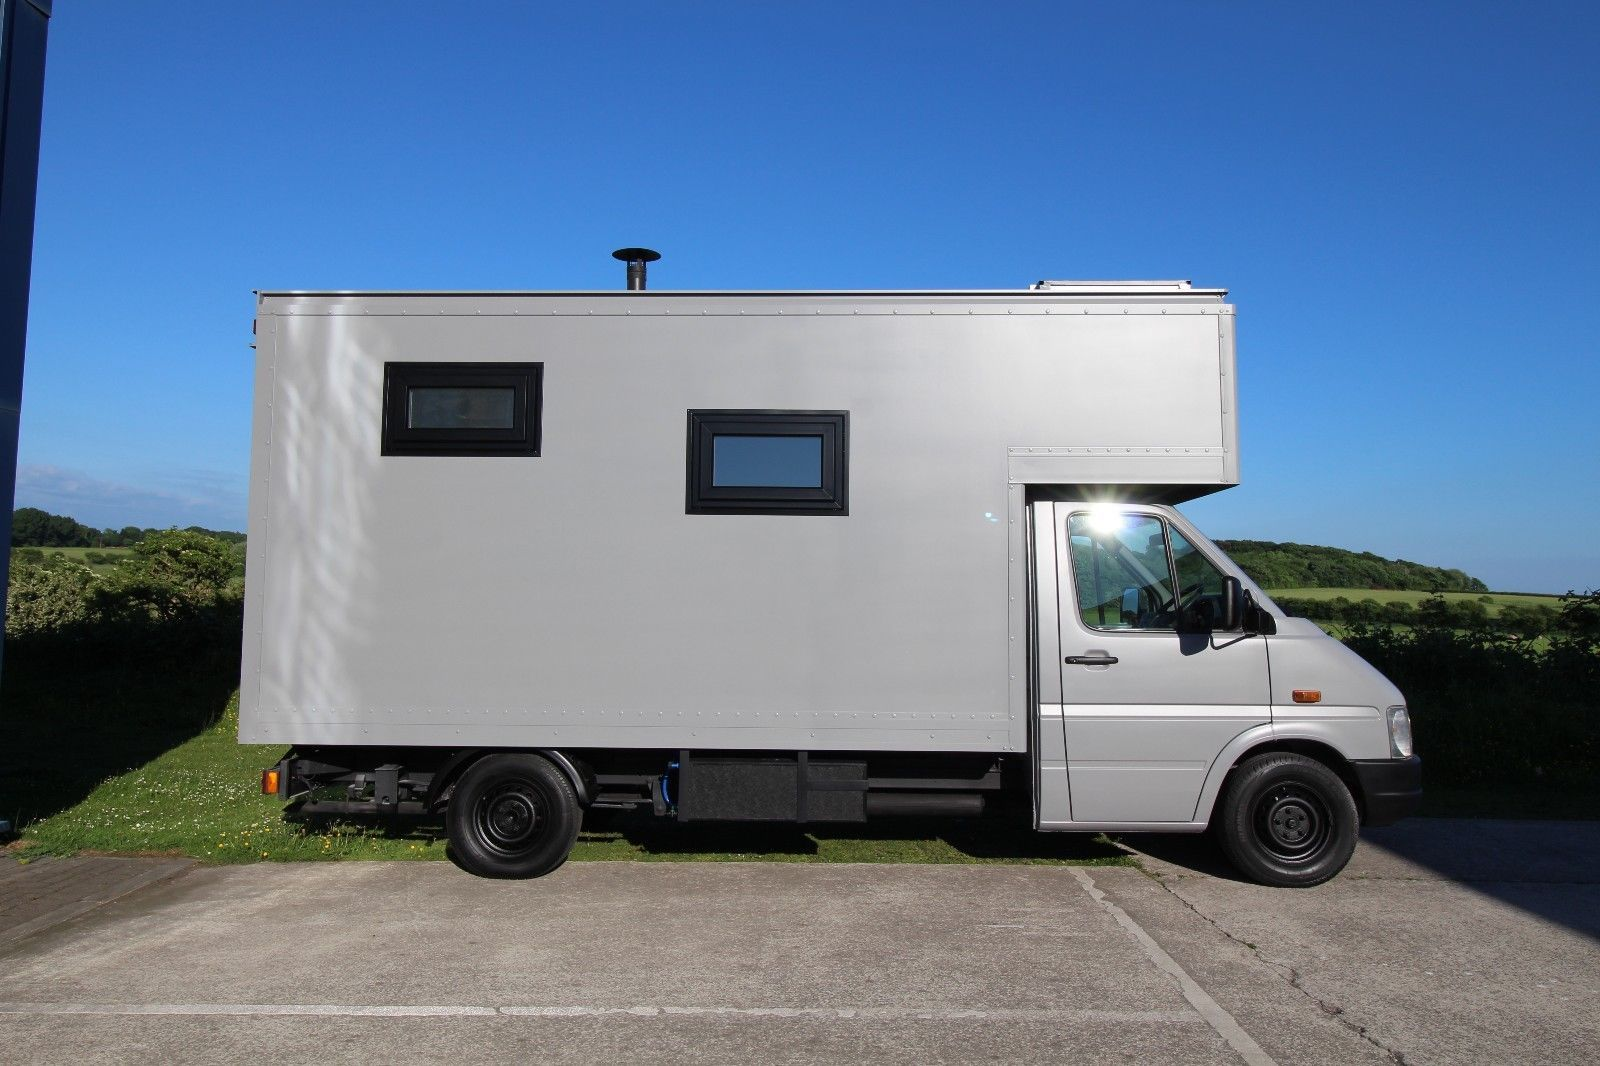 medium resolution of this converted volkswagen lt35 luton box van has a spacious kitchen lounging area and a large wet bath with a shower